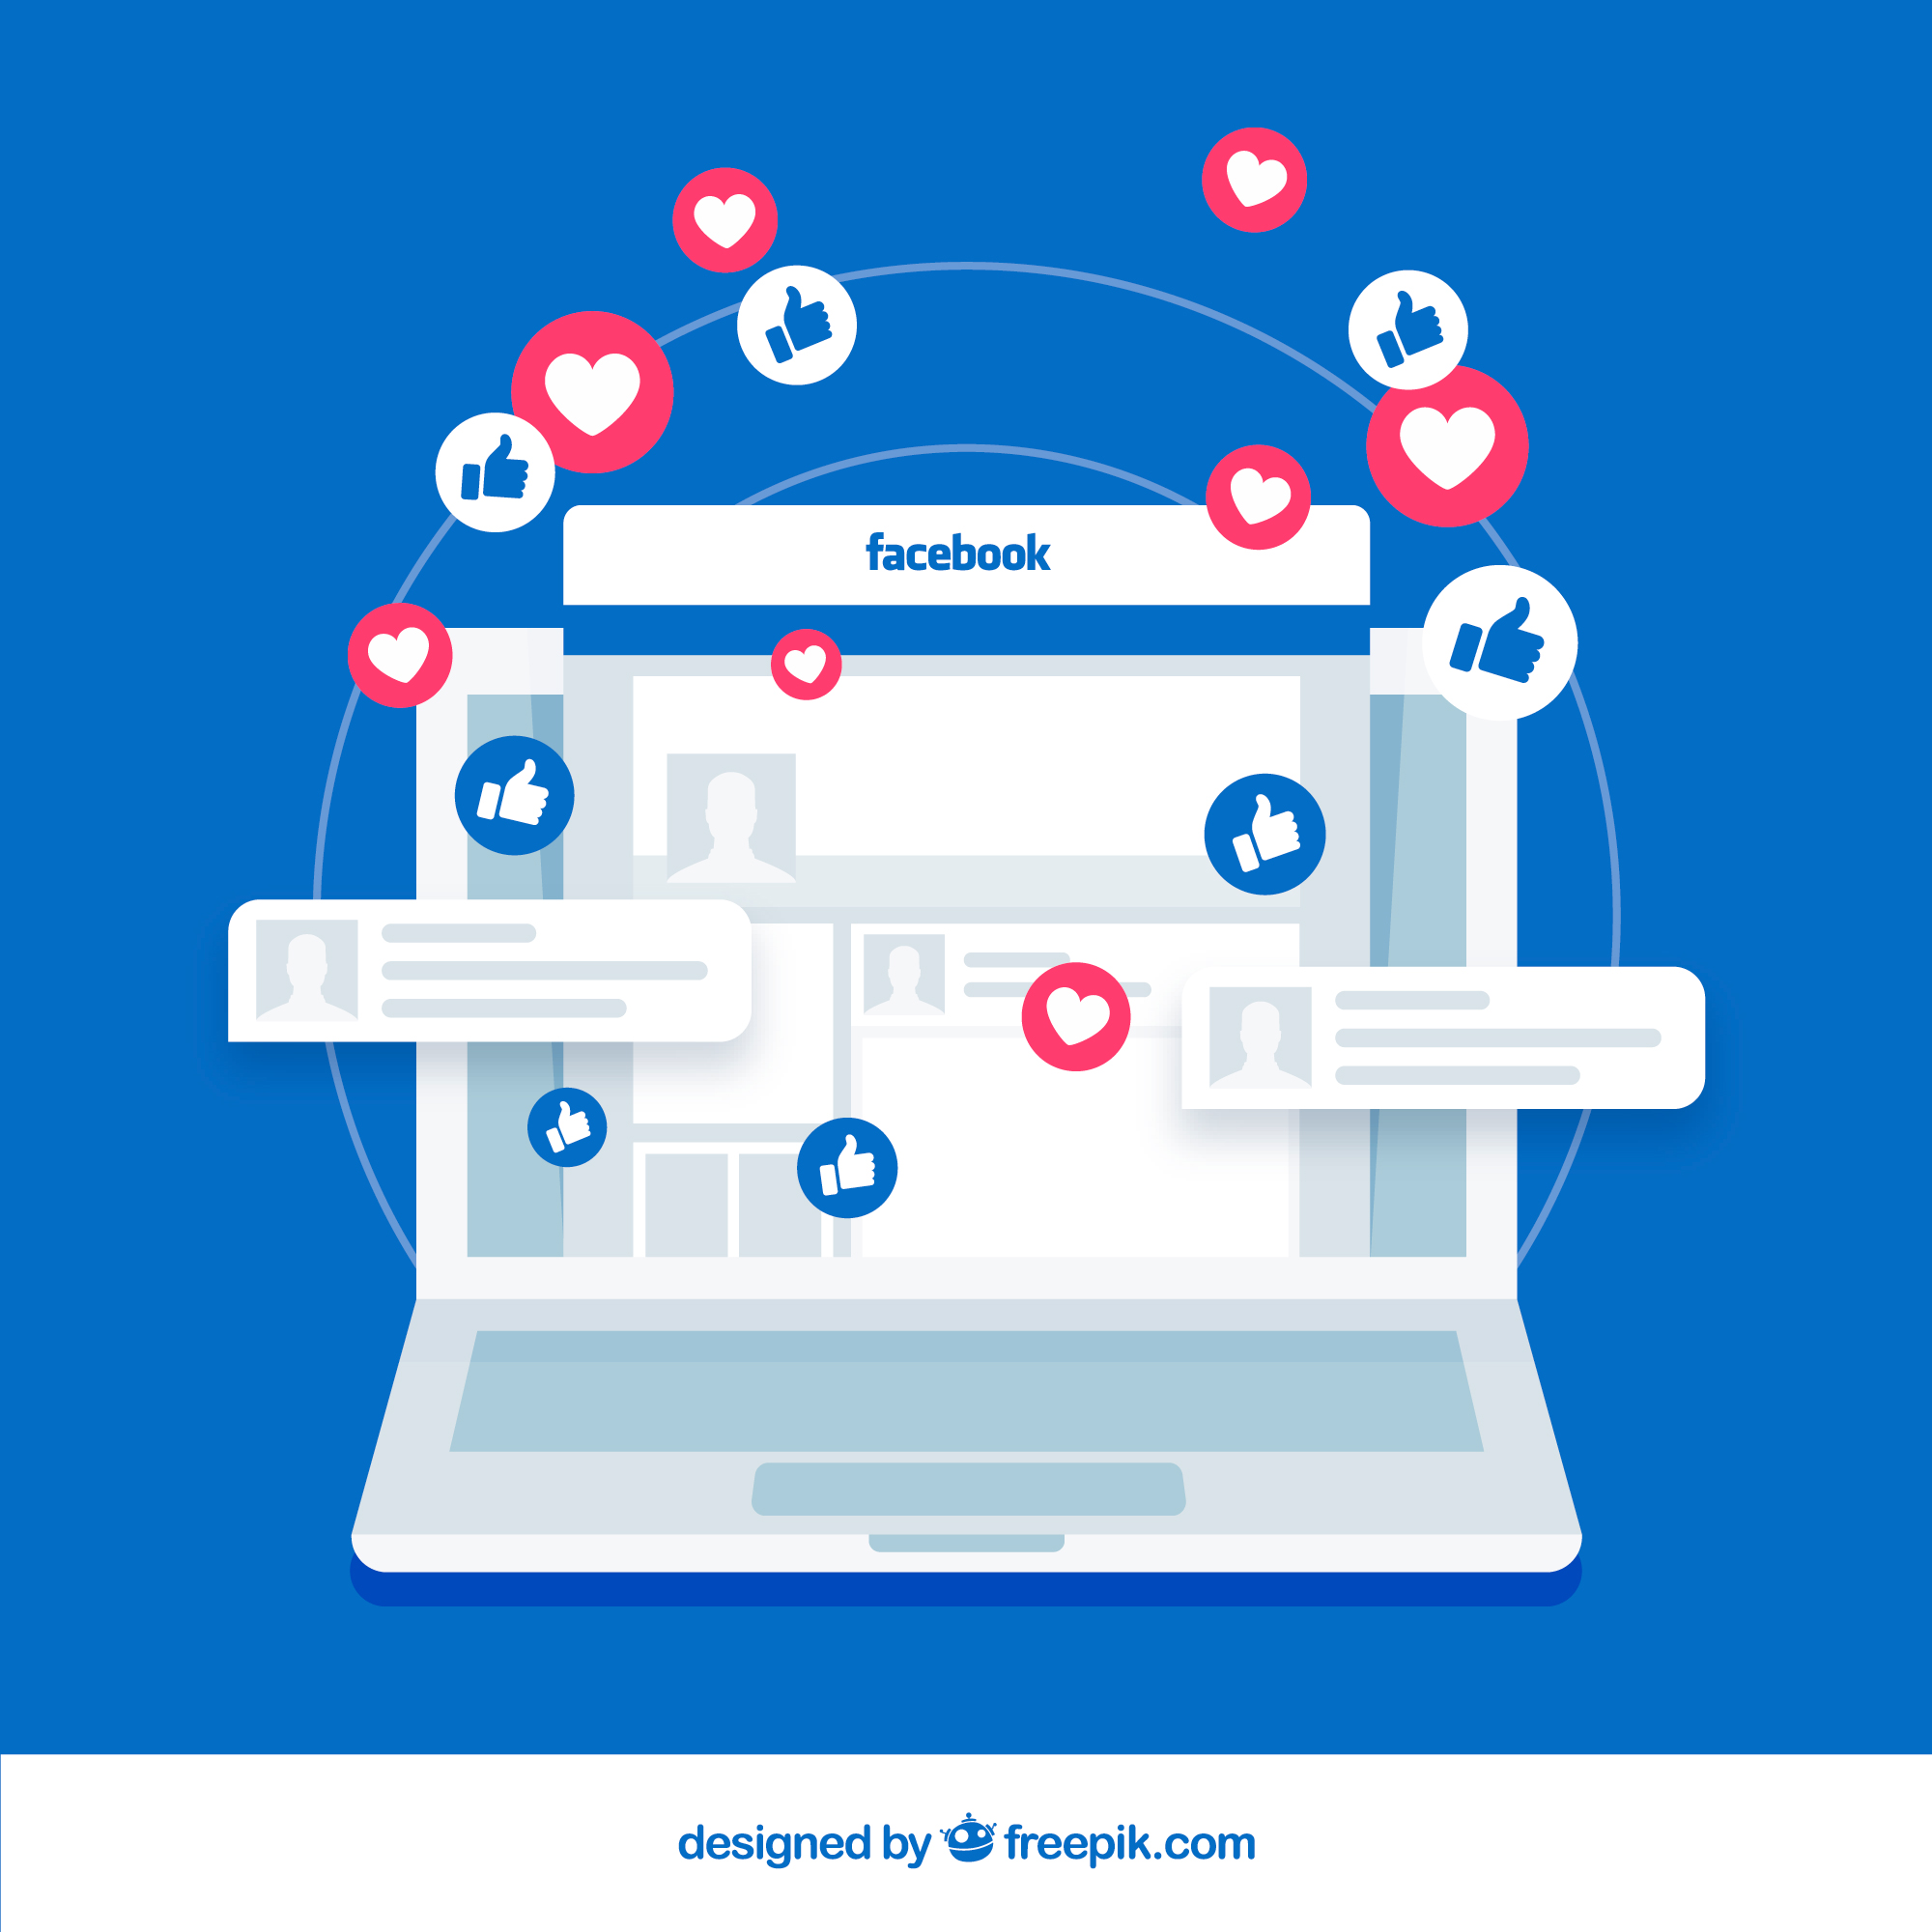 Efficient practices to build your presence faster on Facebook